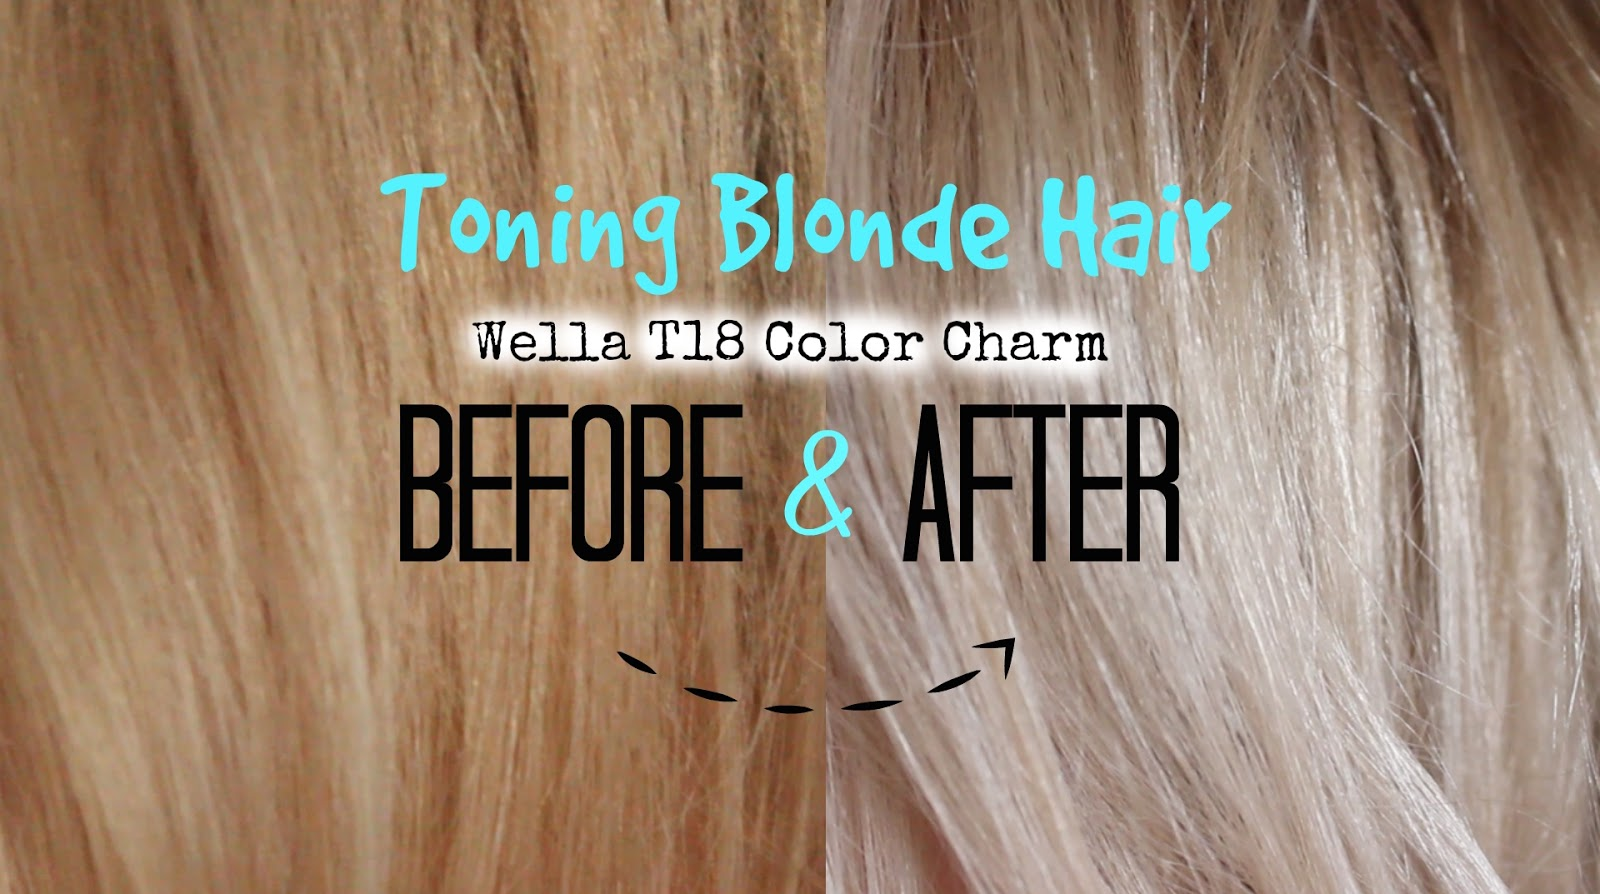 All Fellow Blondes Know The Eternal Struggle Of Maintaining Perfect Blonde Tone Give It A Few Weeks After Having Hair Dyed And Colour Starts To